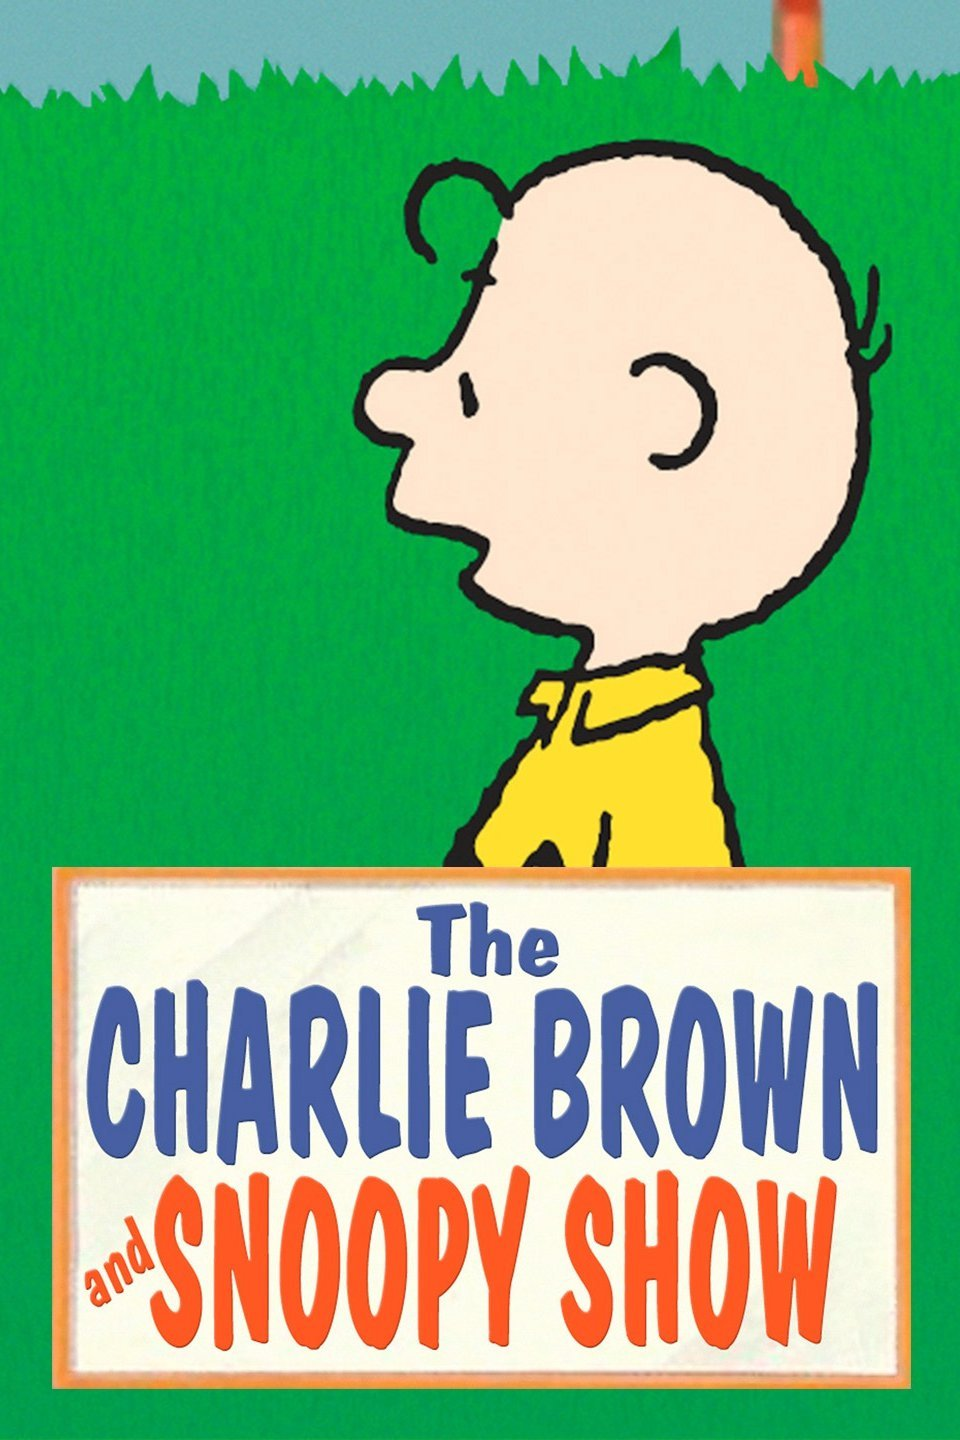 Risultati immagini per The Charlie Brown and Snoopy